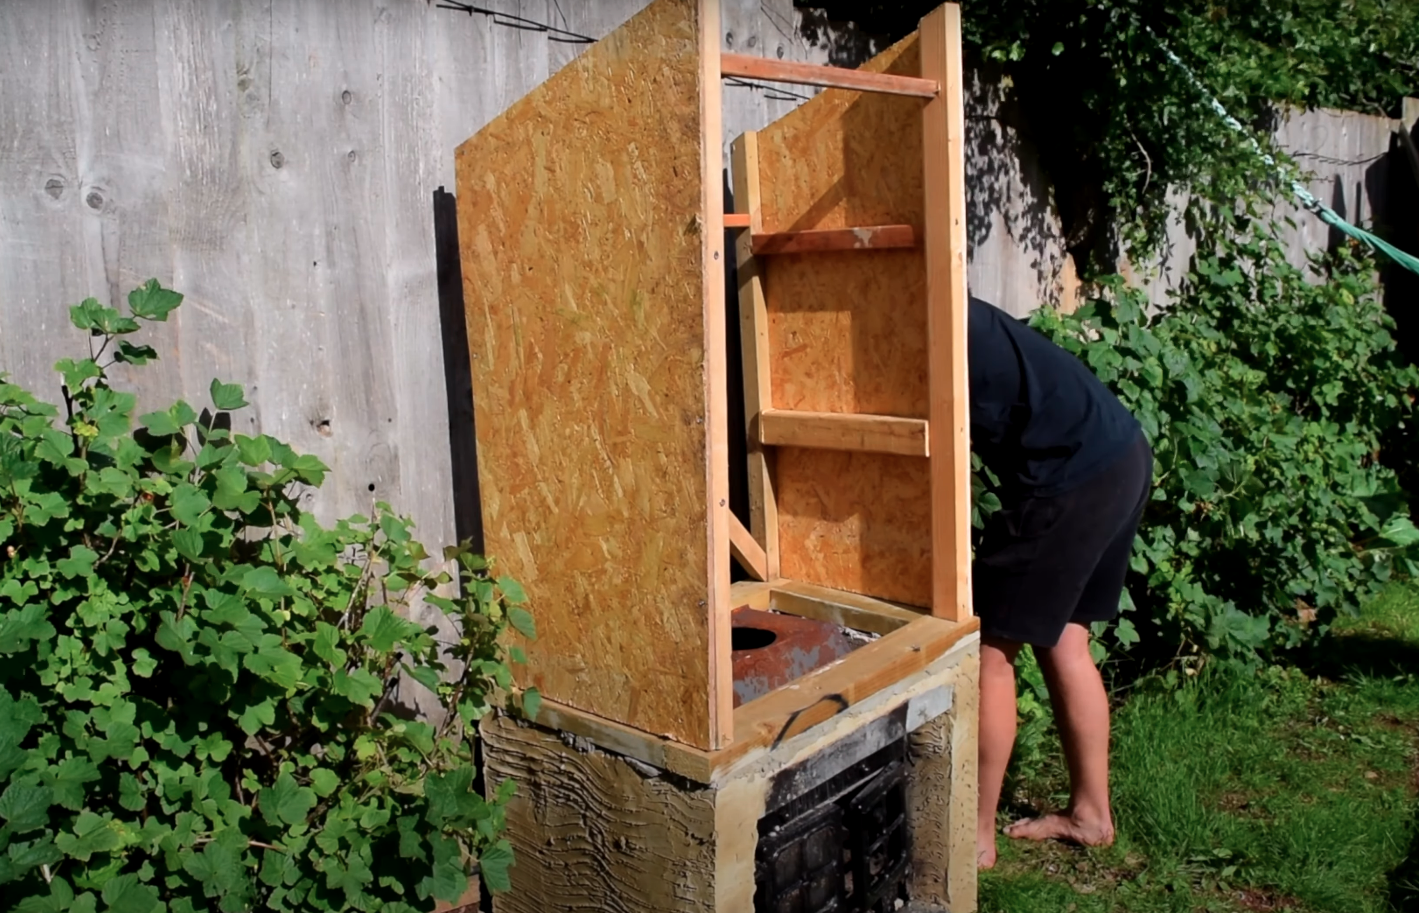 Vertical smokehouse (or mine)